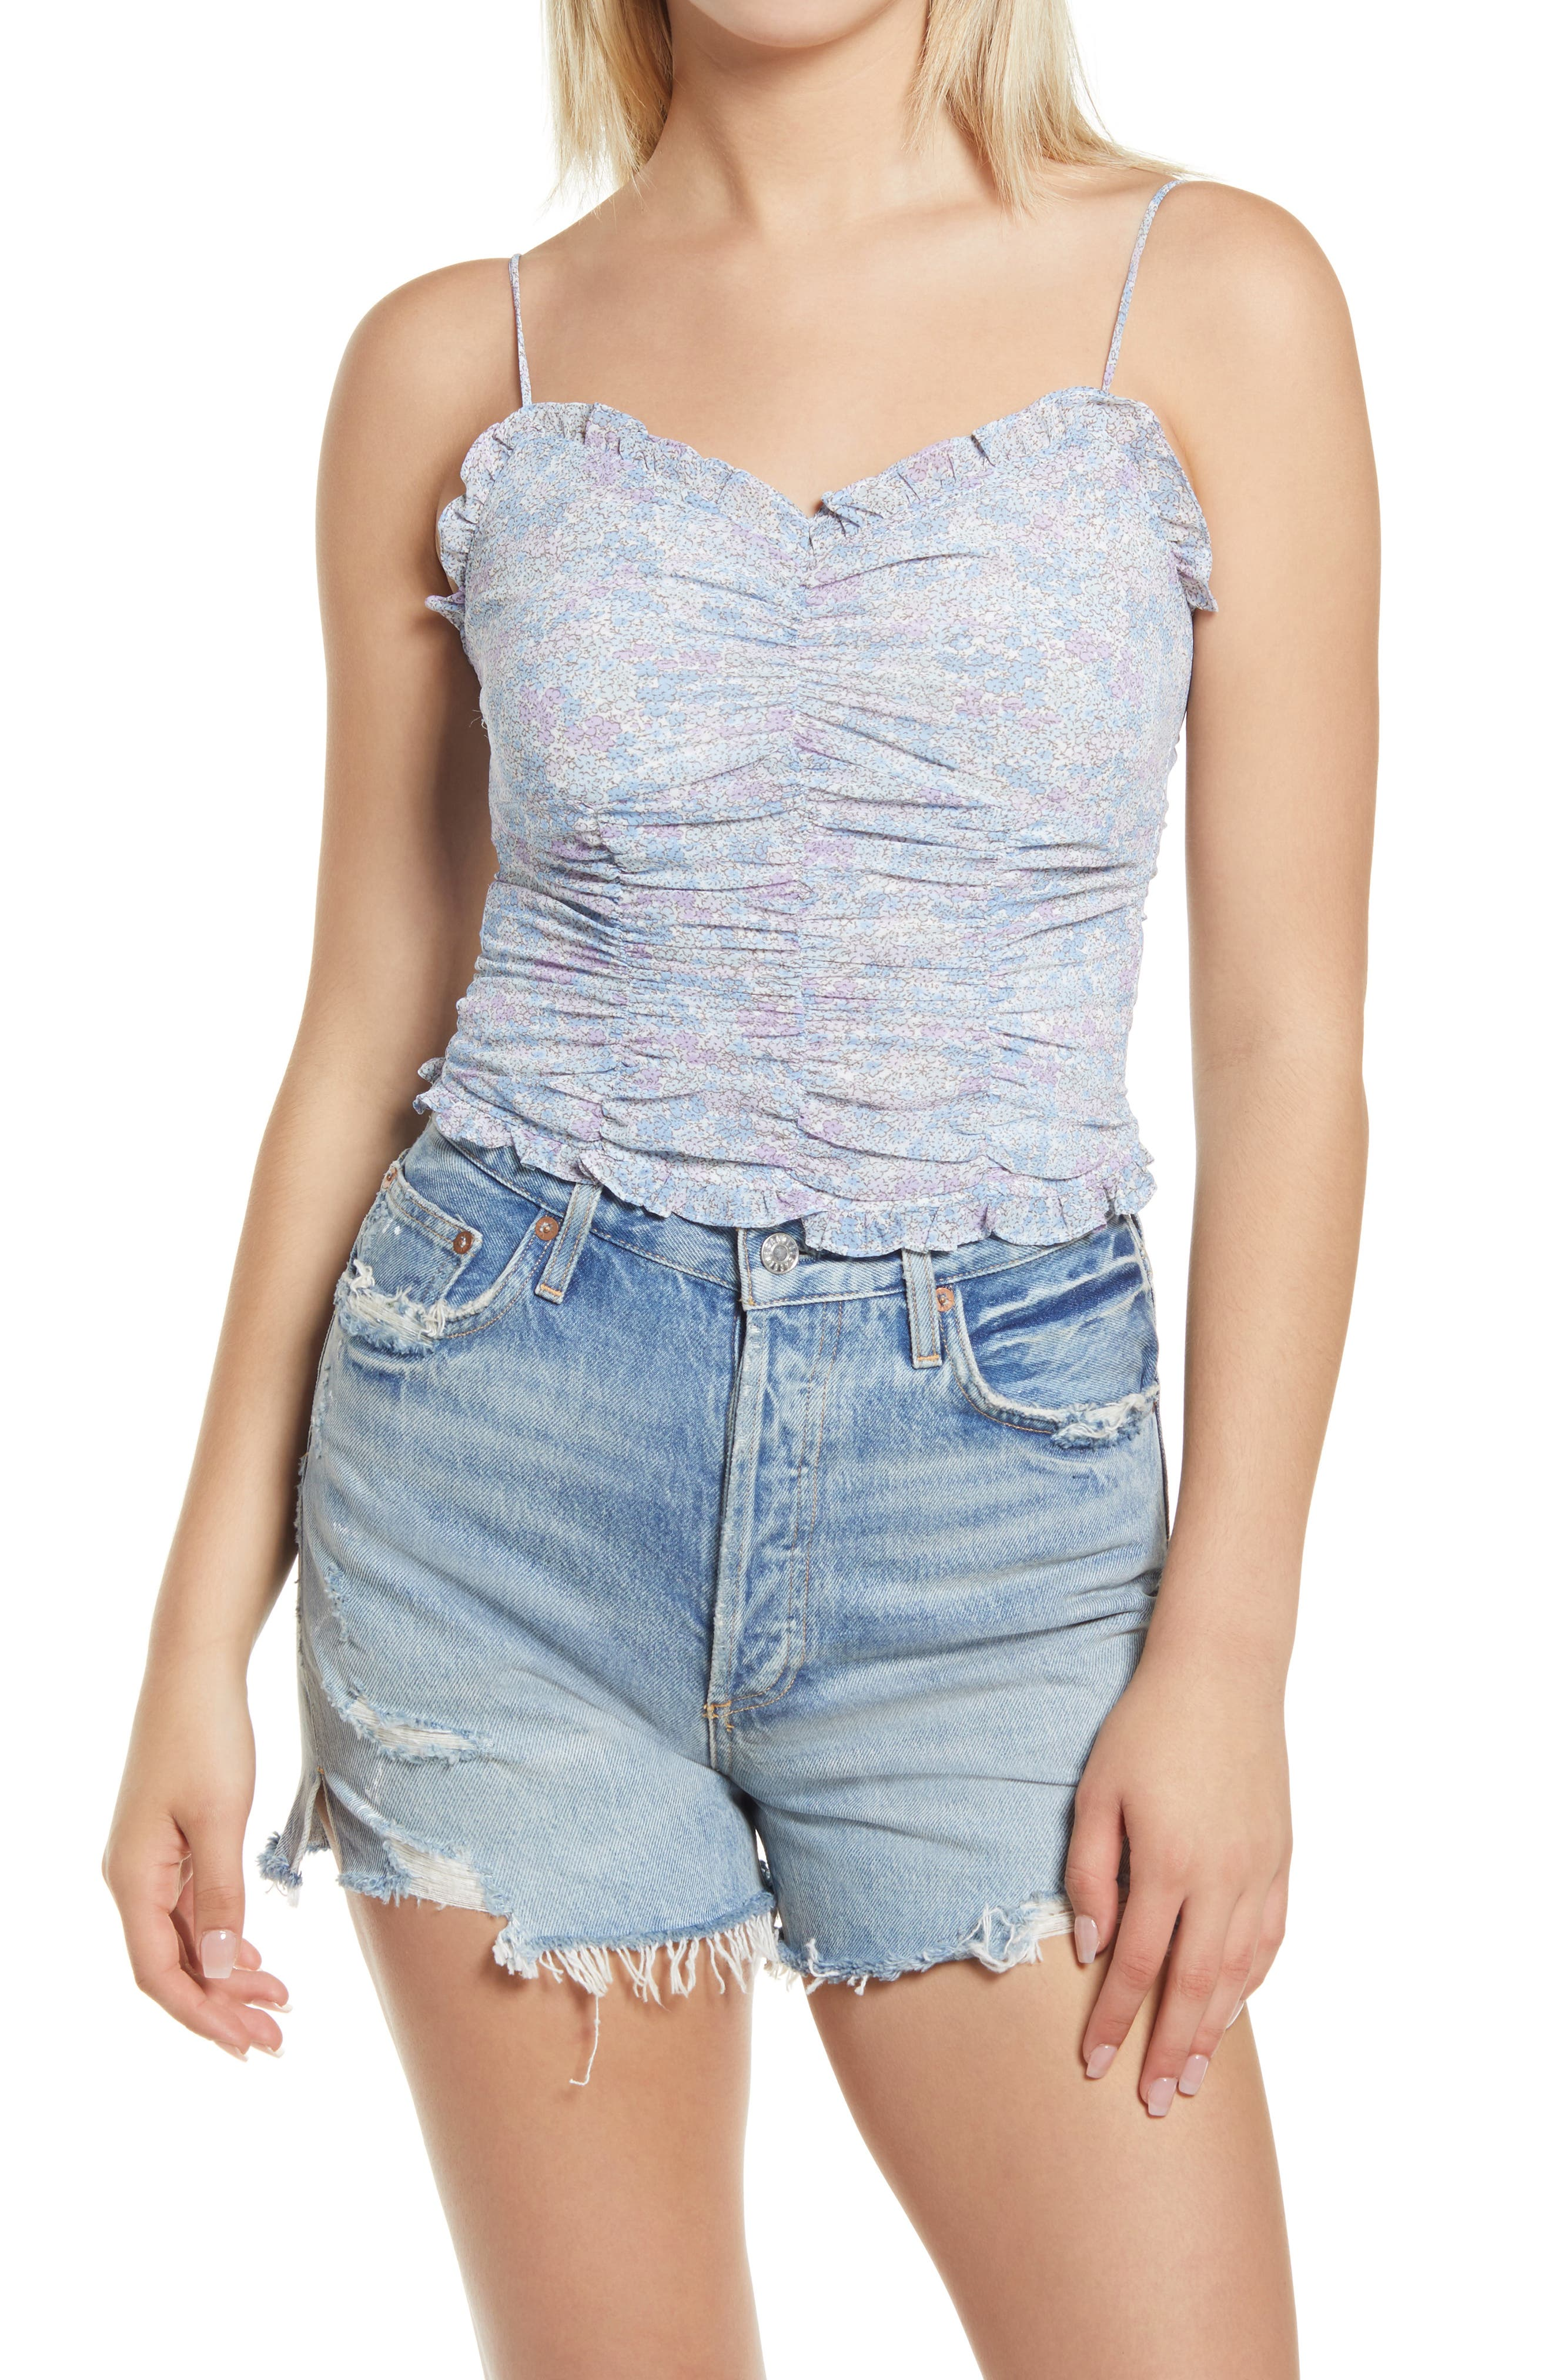 Ruched Floral Camisole